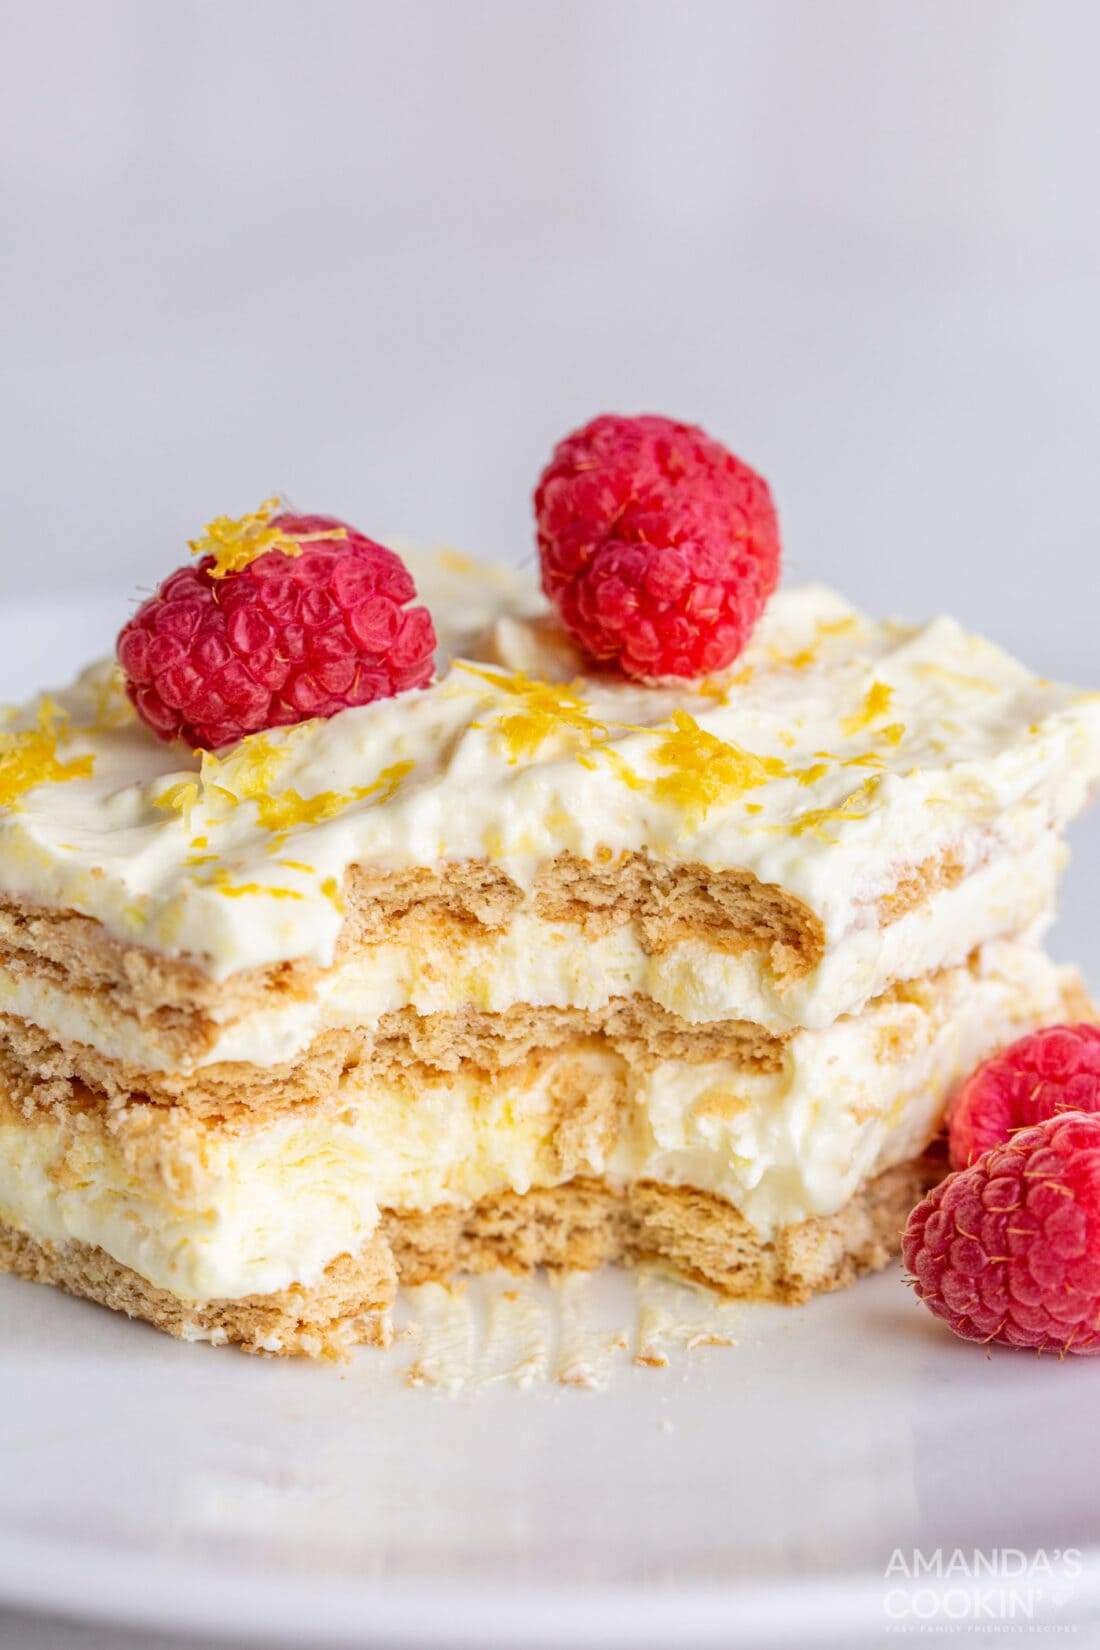 lemon icebox cake with bites out of it